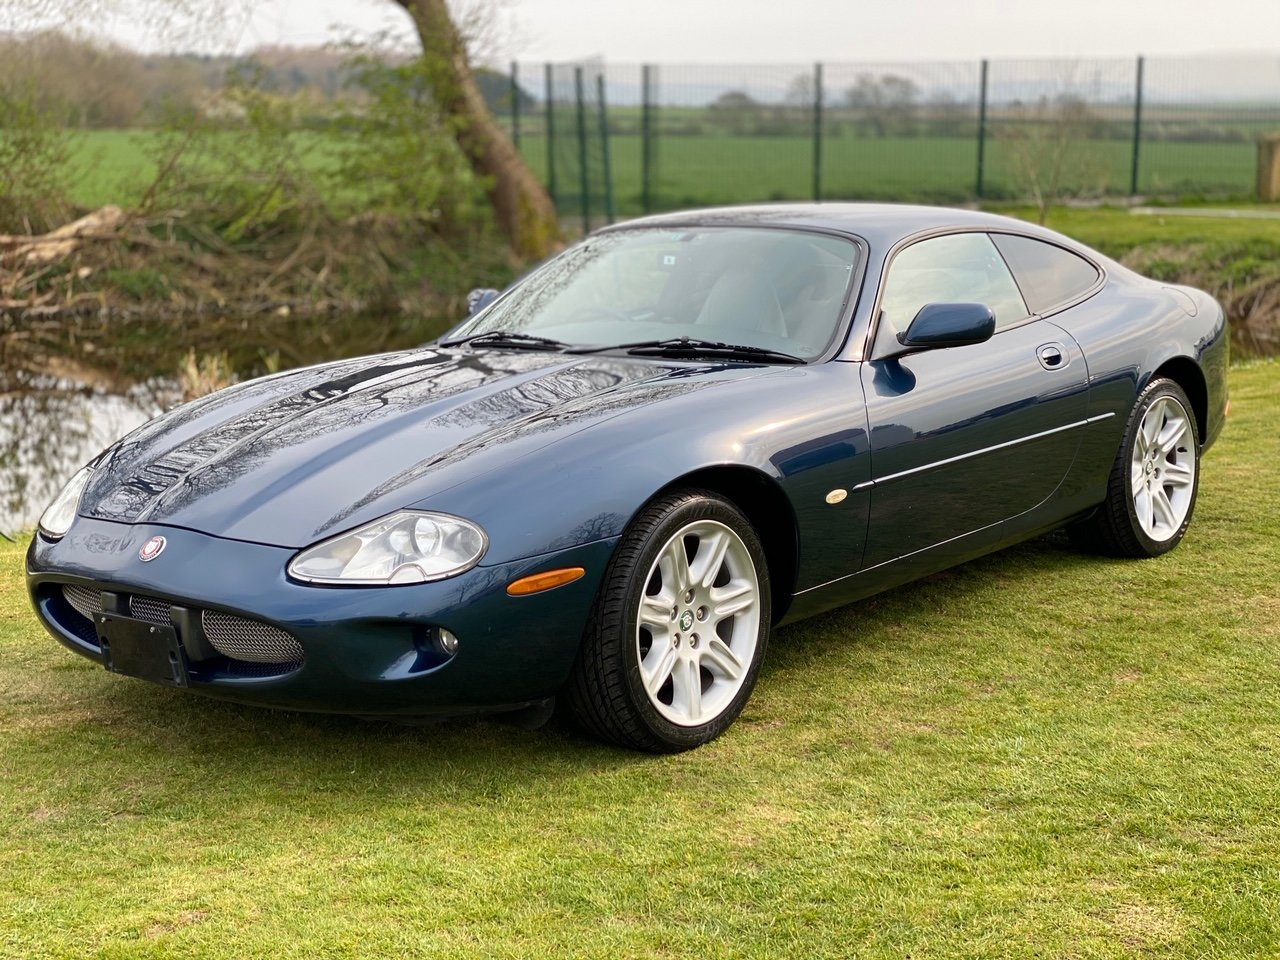 1997  JAGUAR XK8 4.0 V8 SPORT COUPE AUTOMATIC * XKR LOOKS For Sale (picture 1 of 6)